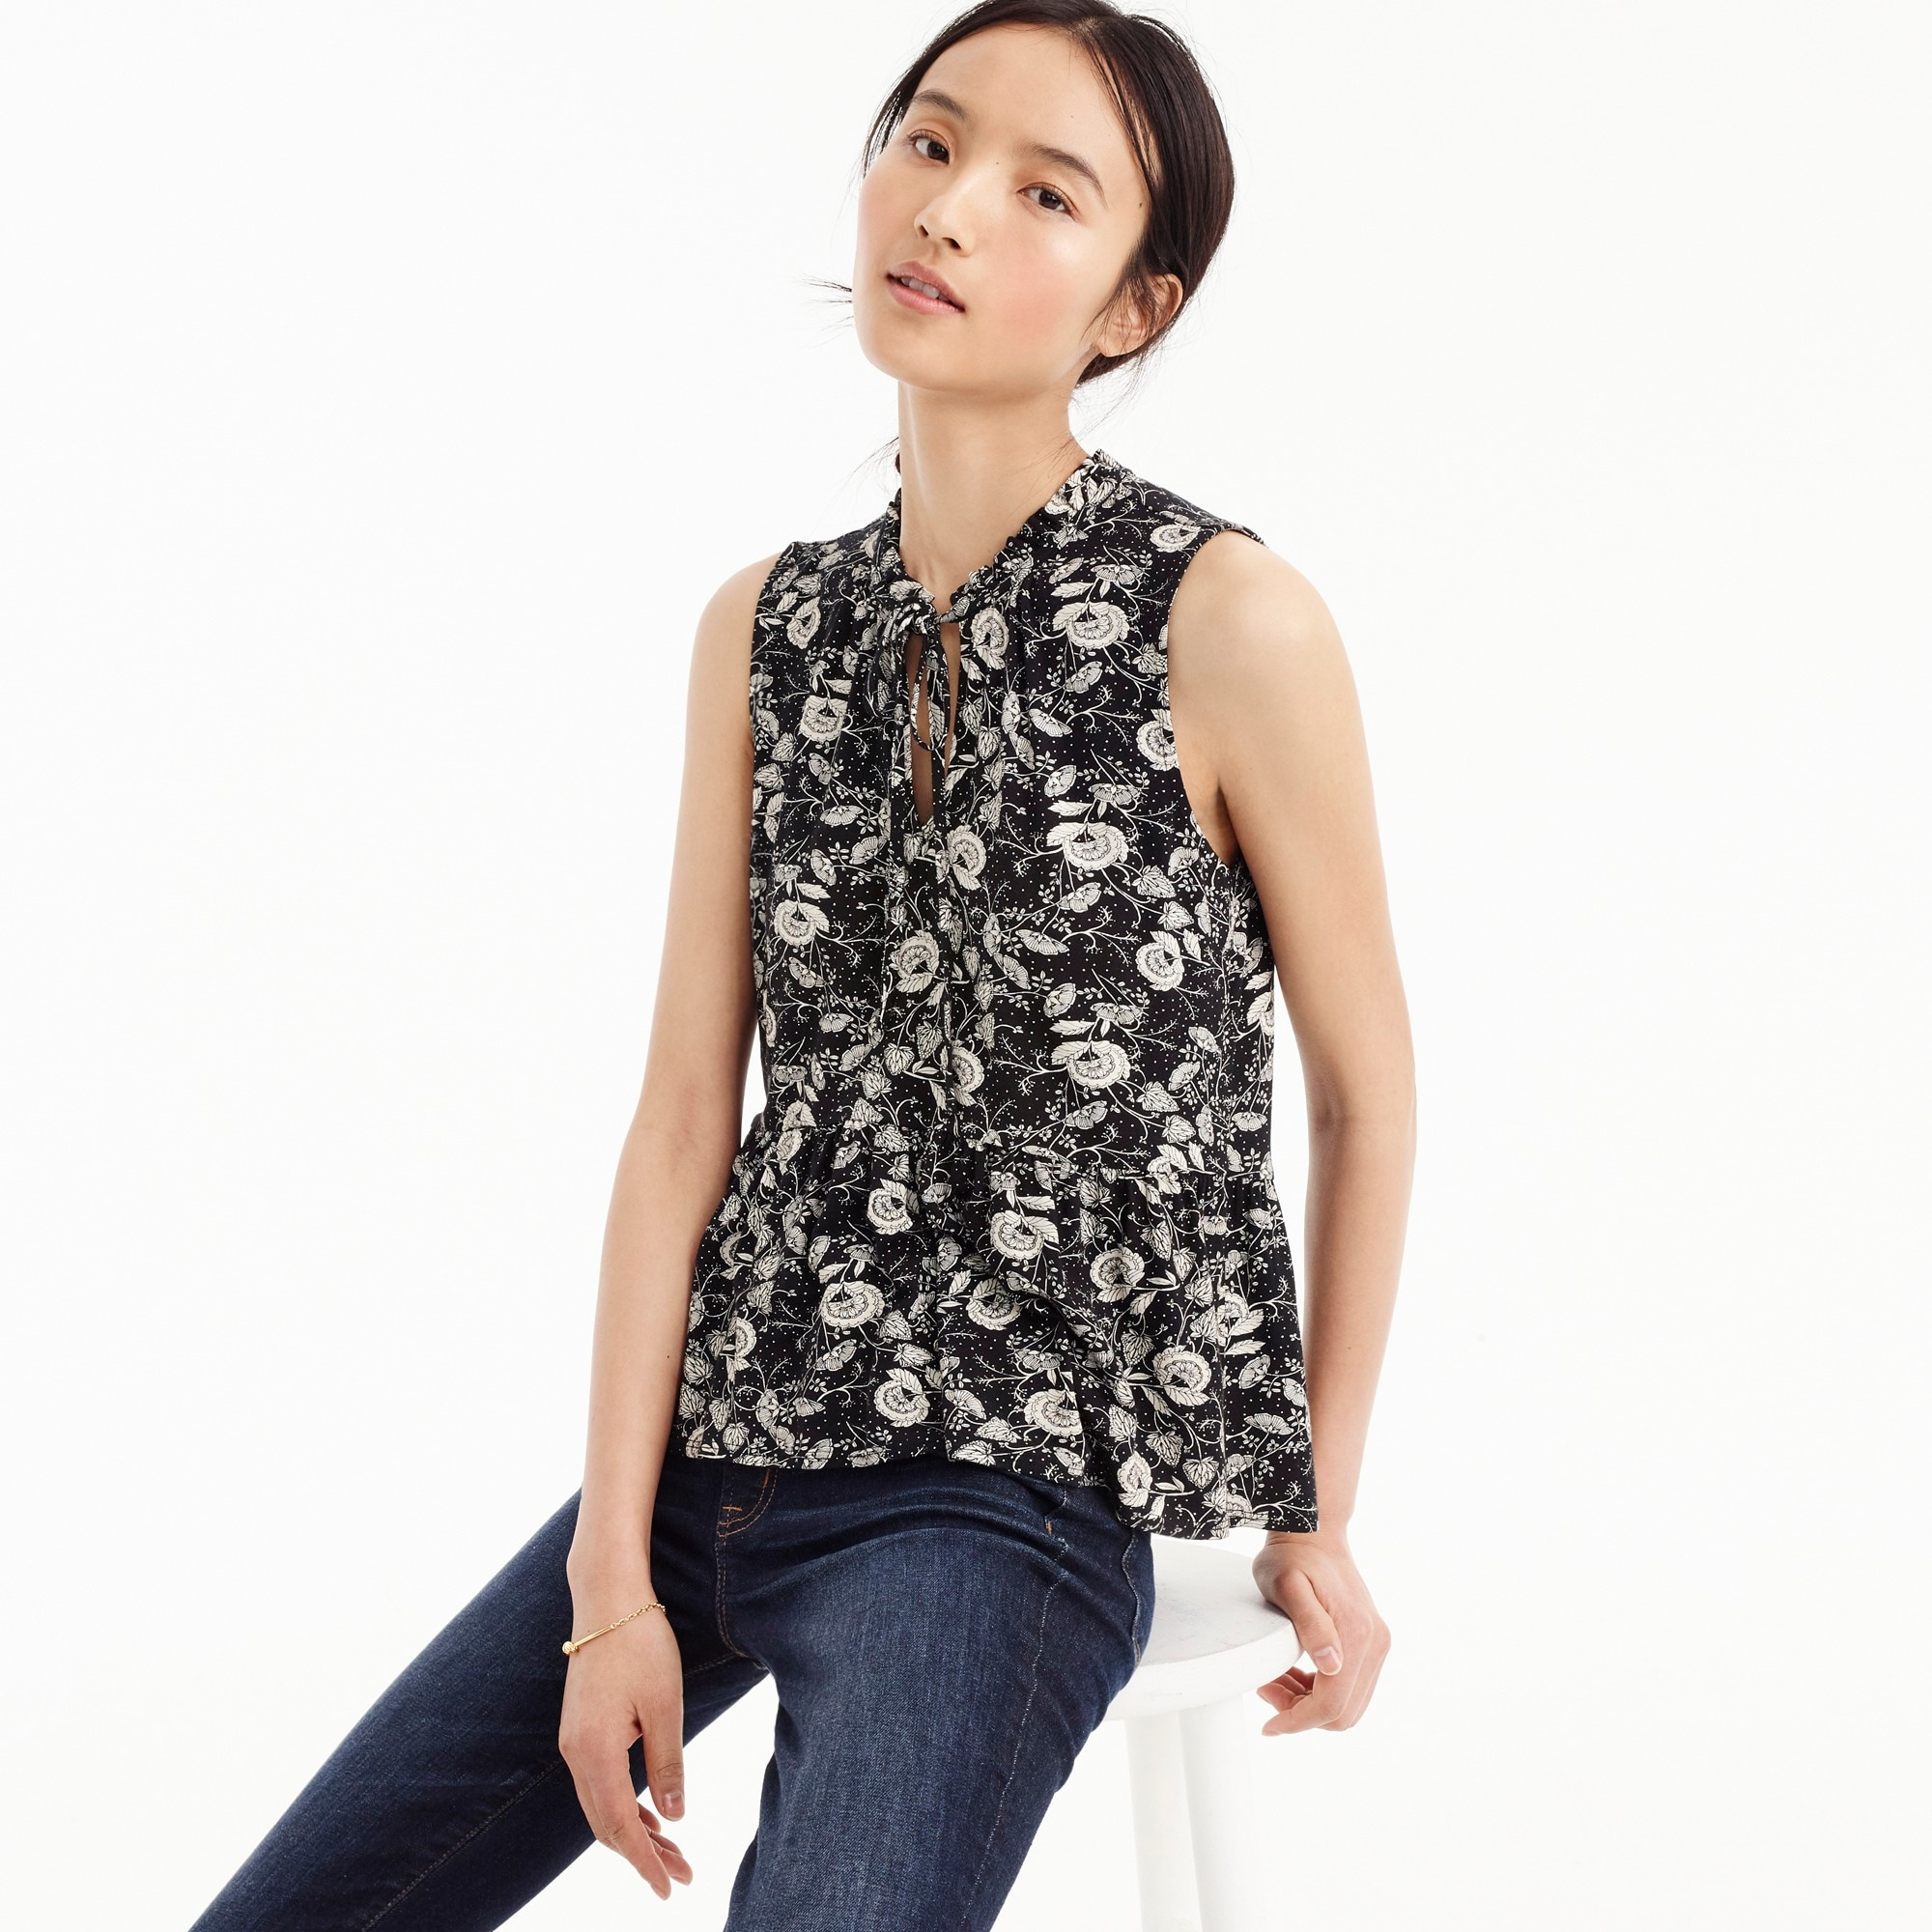 Ruffle-trimmed tie-front top in floral women shirts & tops c